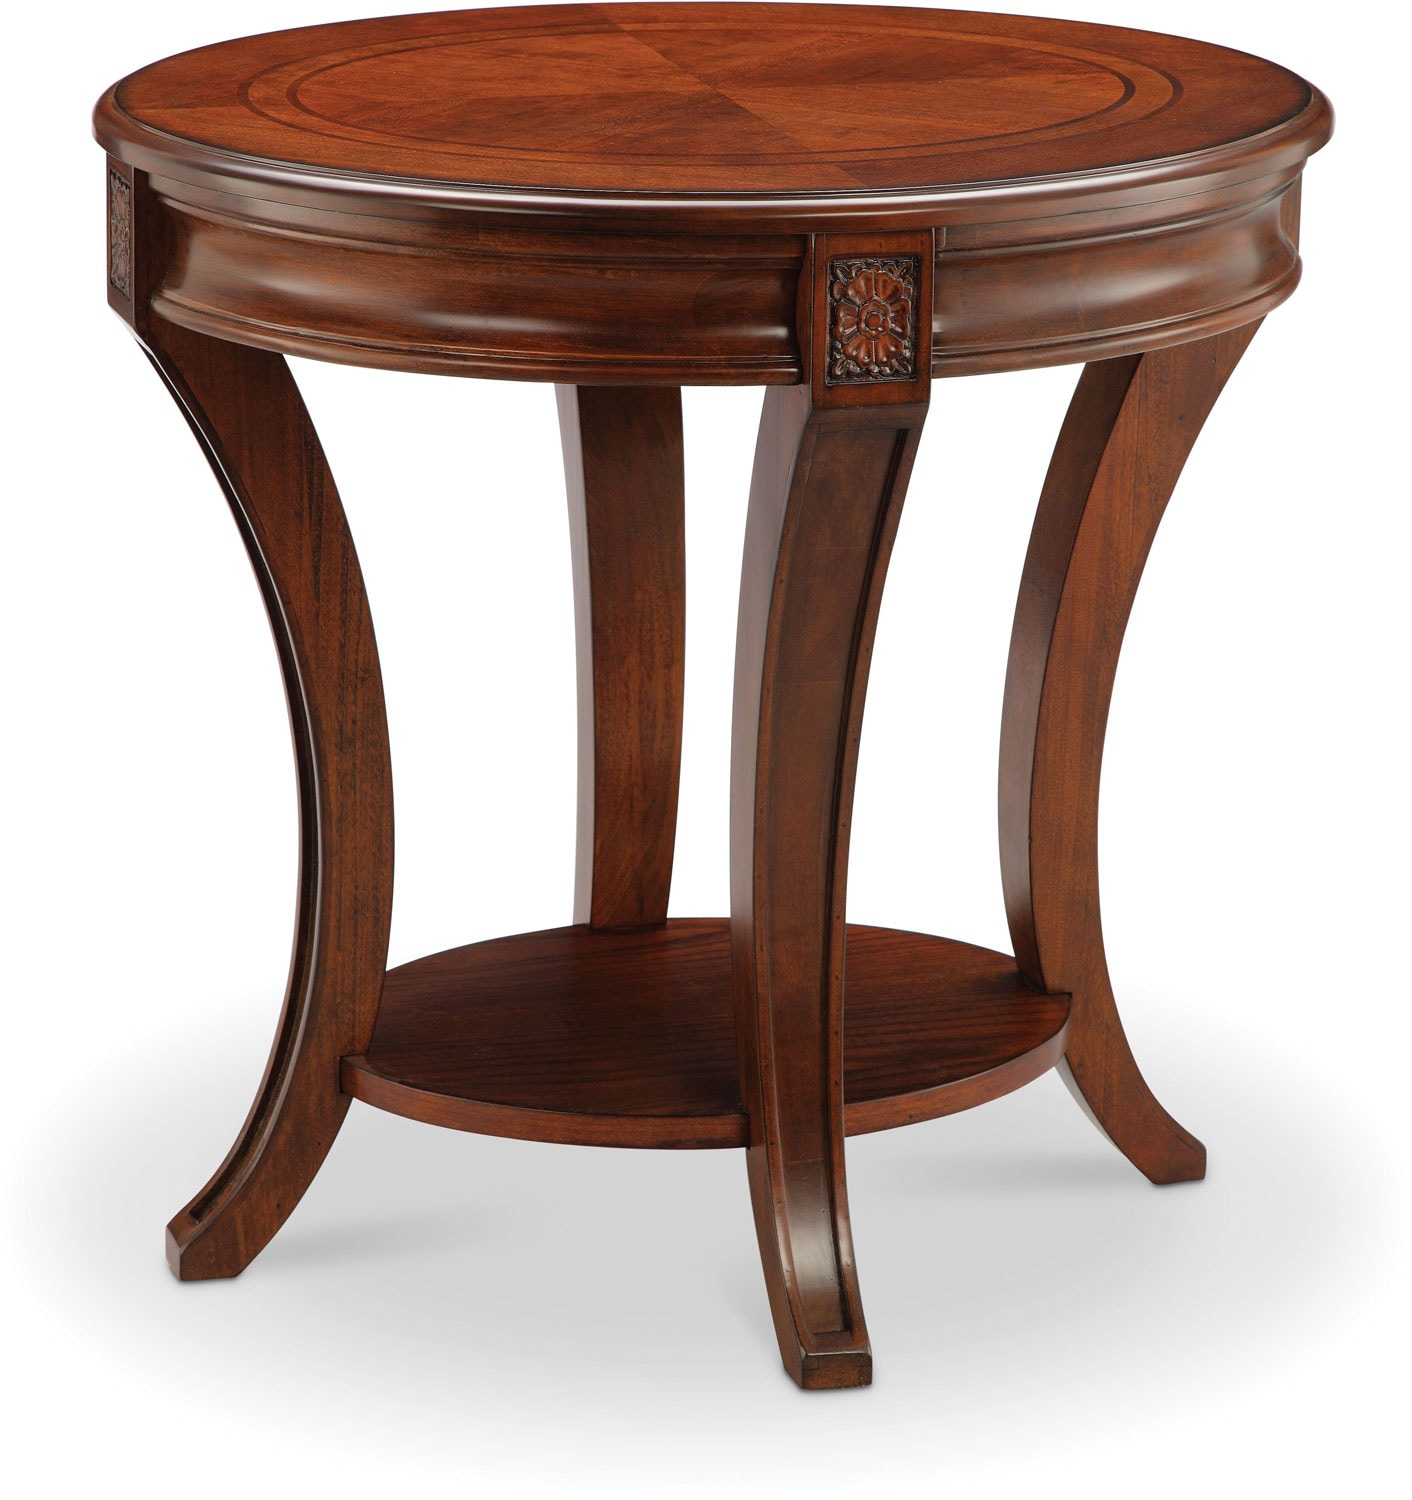 Winslet End Table - Cherry